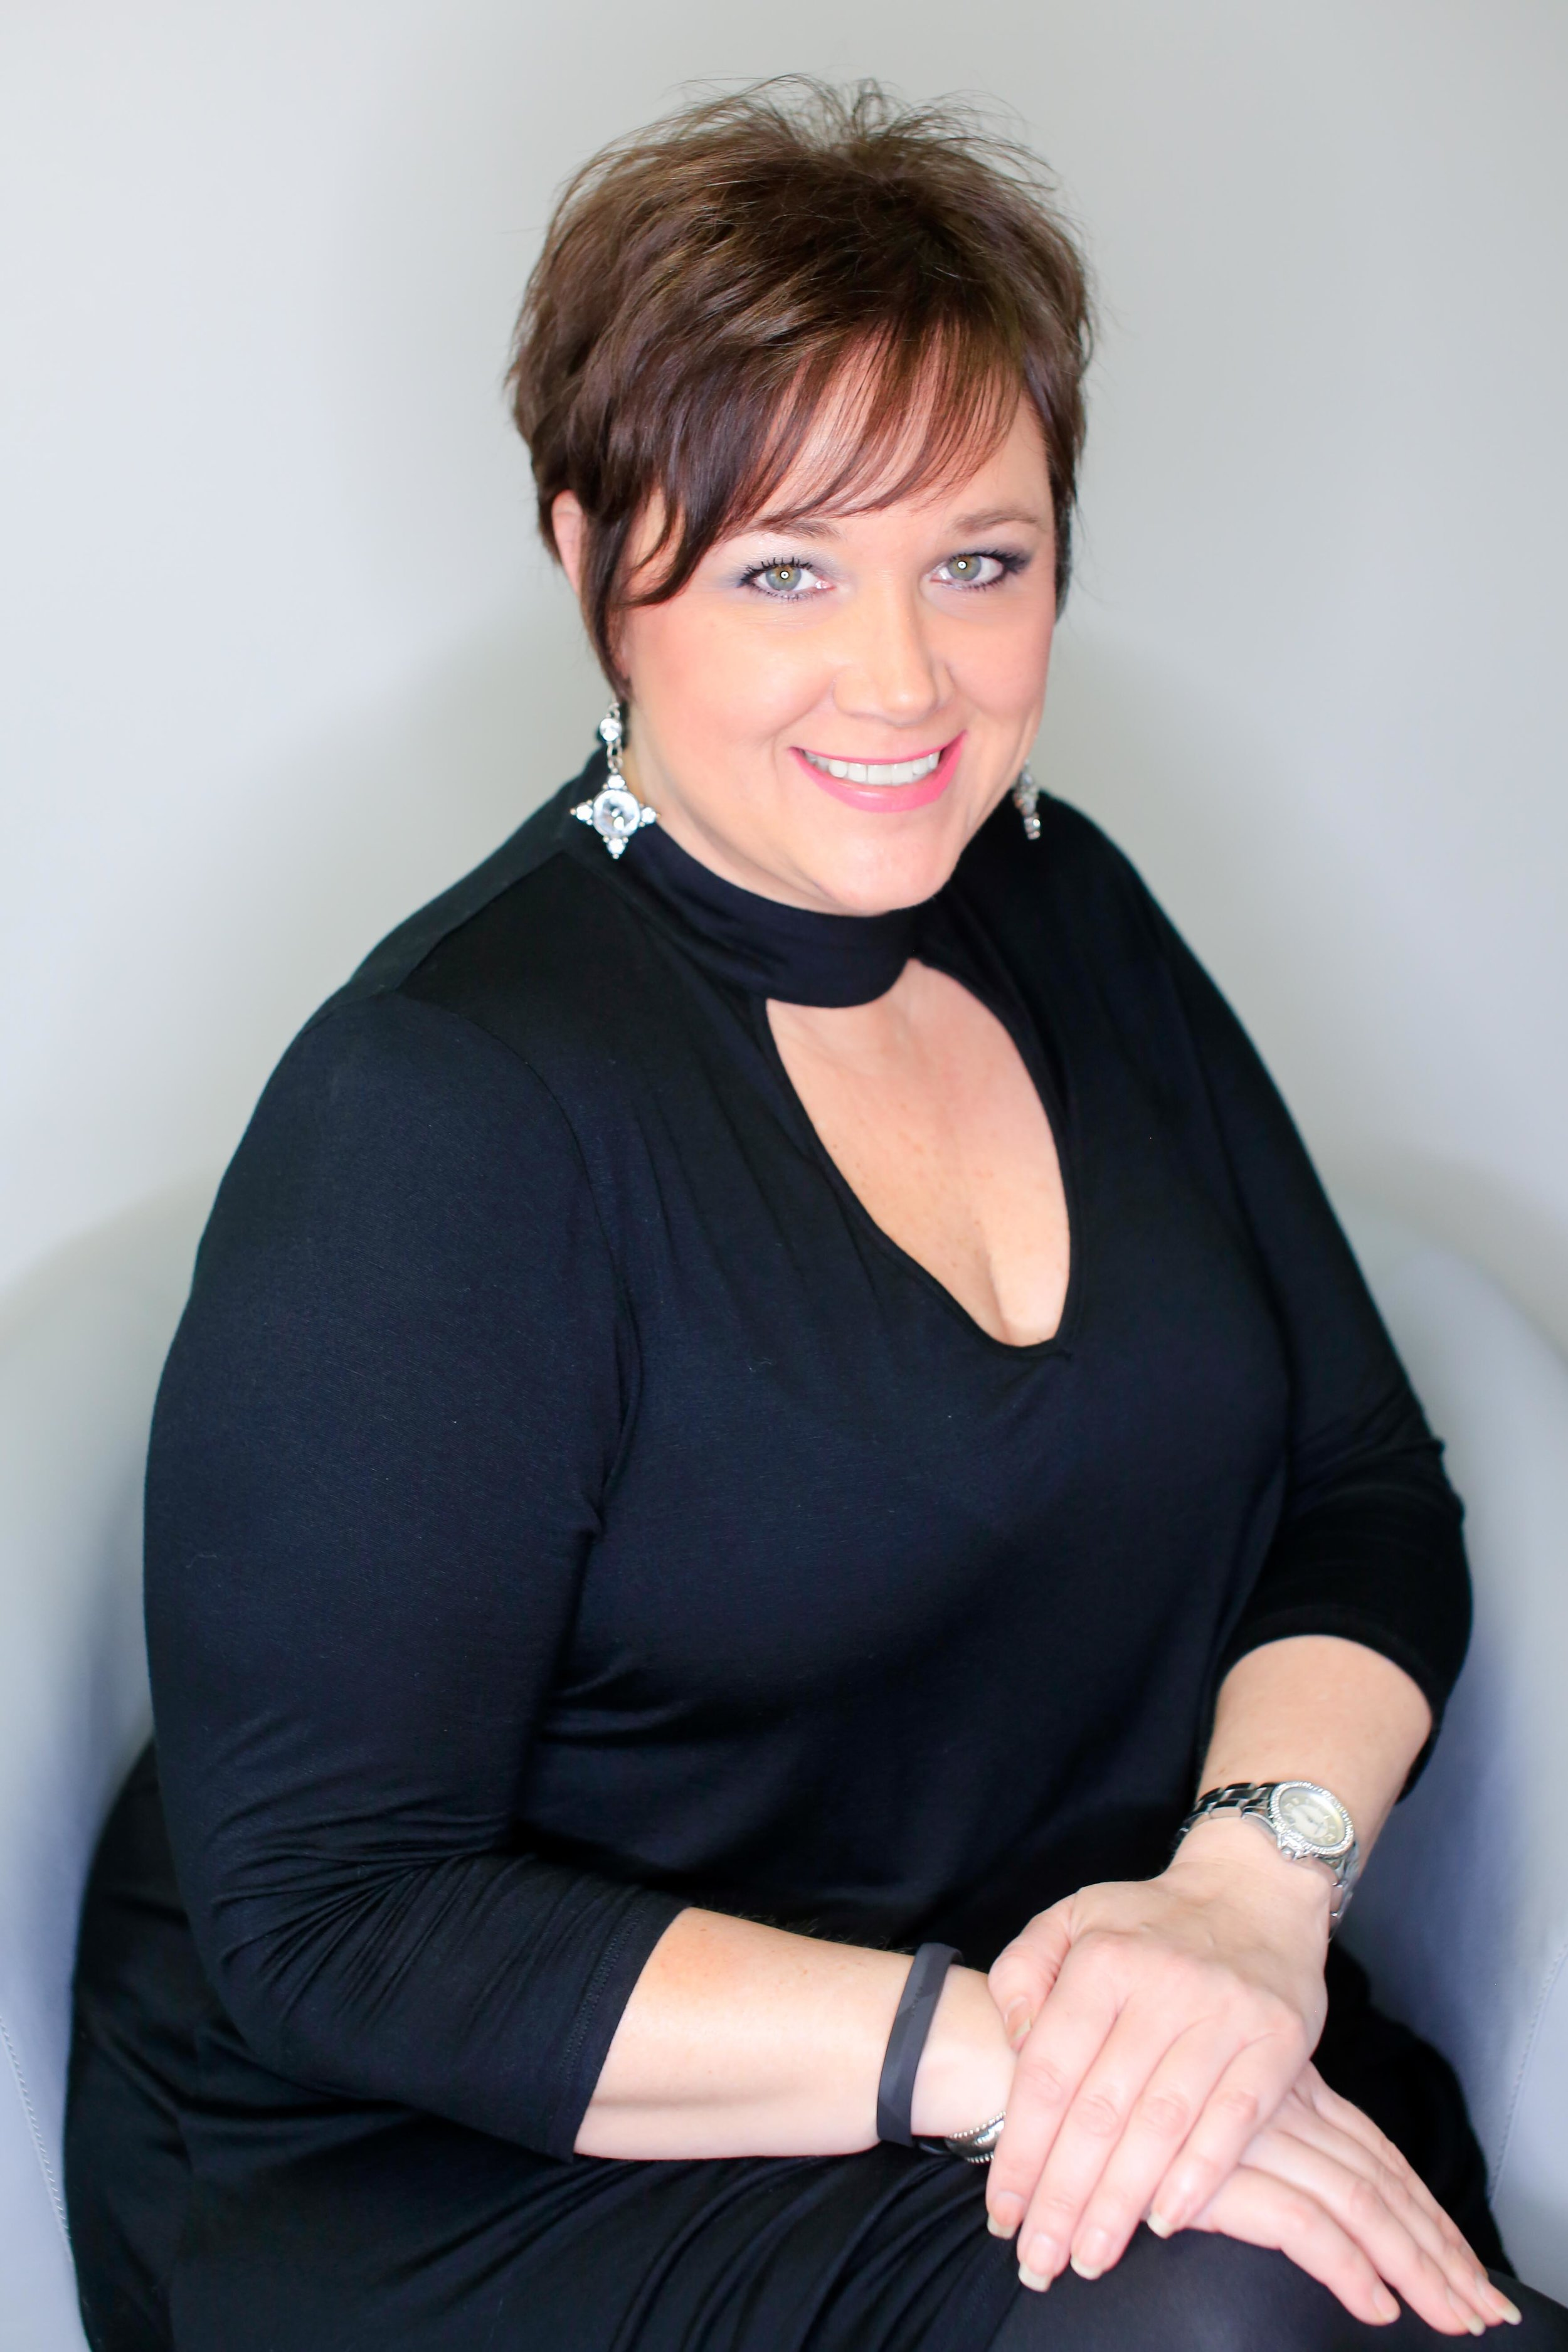 Monica Peavy - Manager, StylistBeauty is not a competition. All women want is to be the best version of themselves.